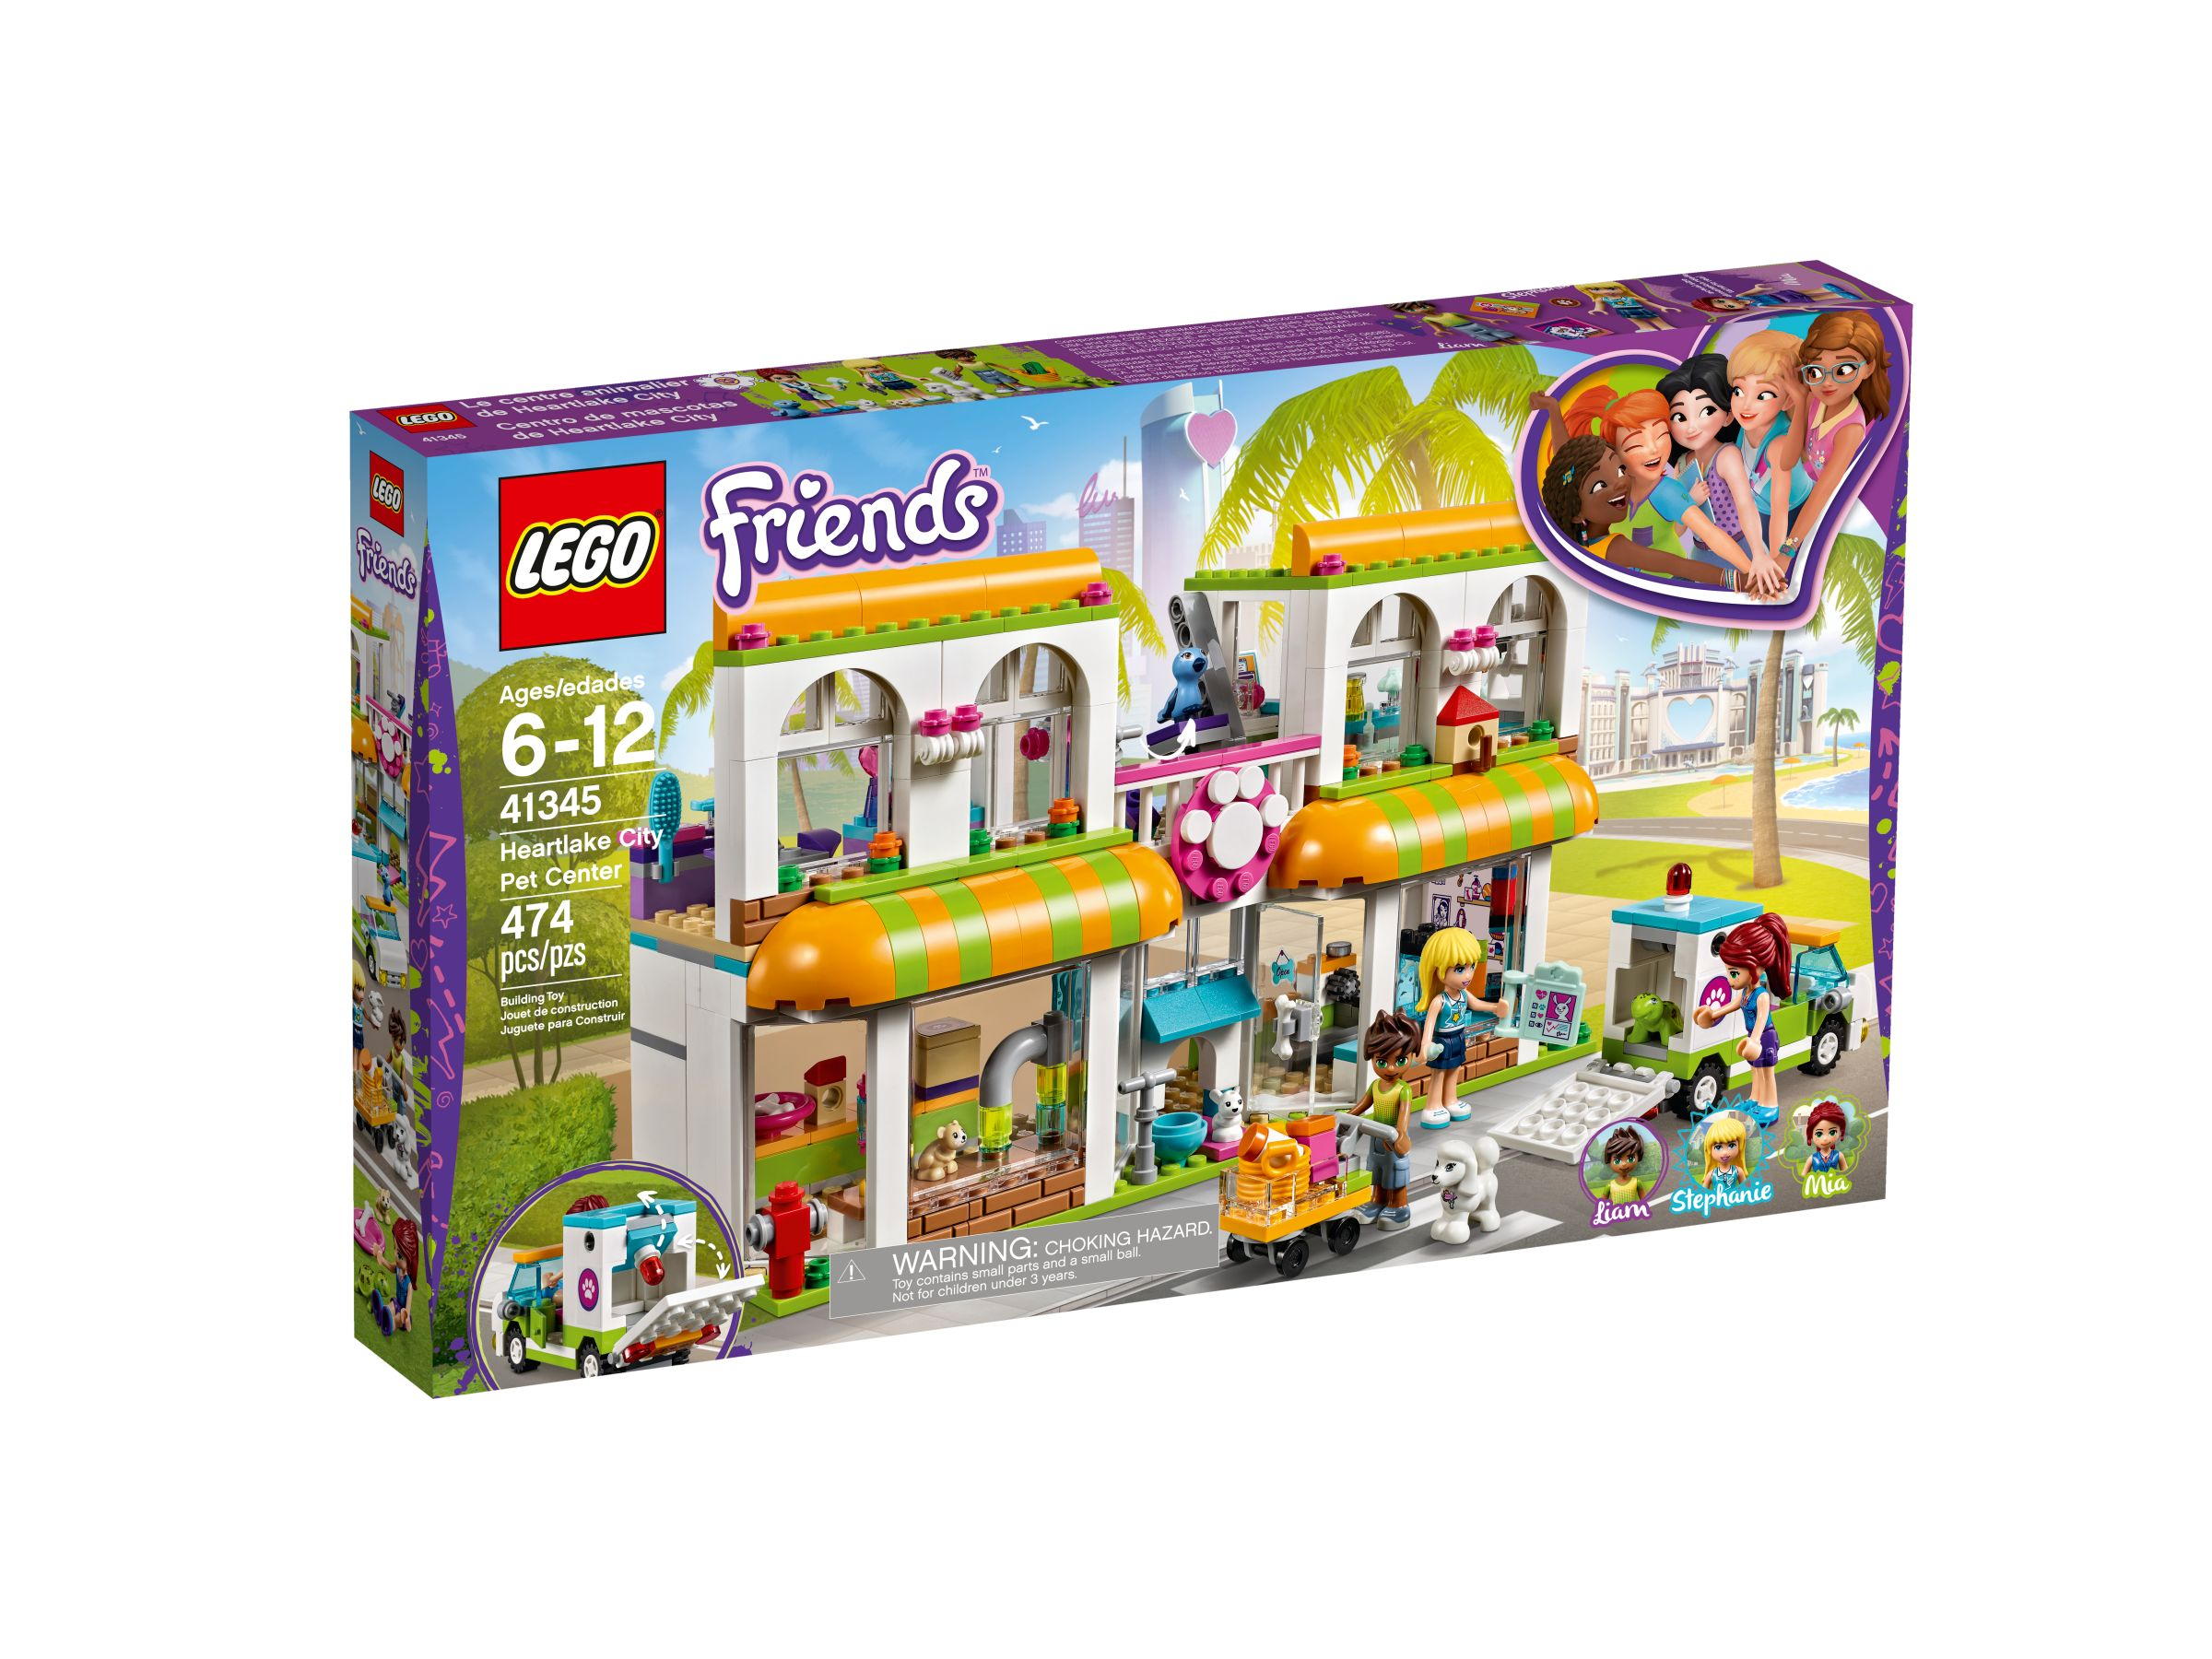 LEGO Friends 41345 Heartlake City Haustierzentrum LEGO_41345_alt1.jpg